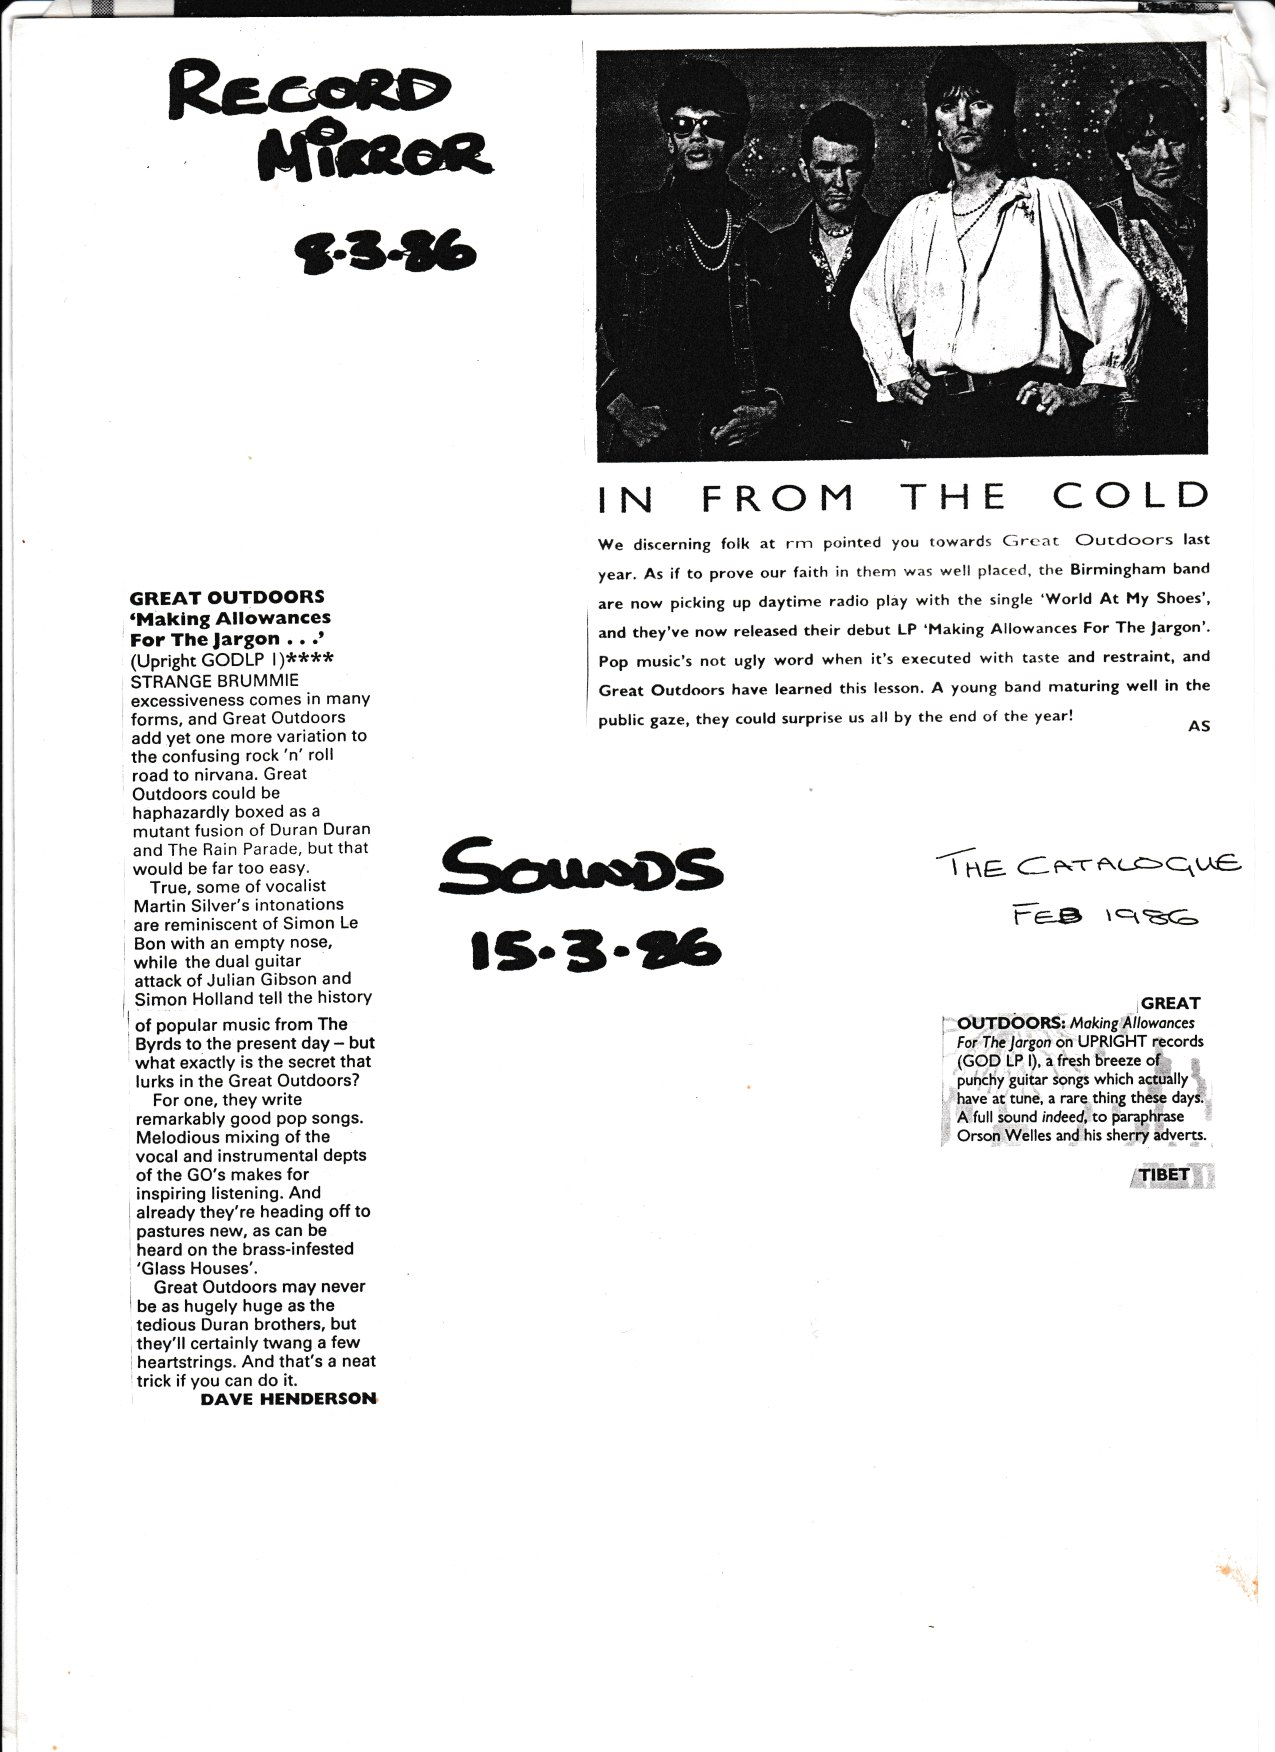 Review of the GO album - Record Miror, Sounds etc. March 1986